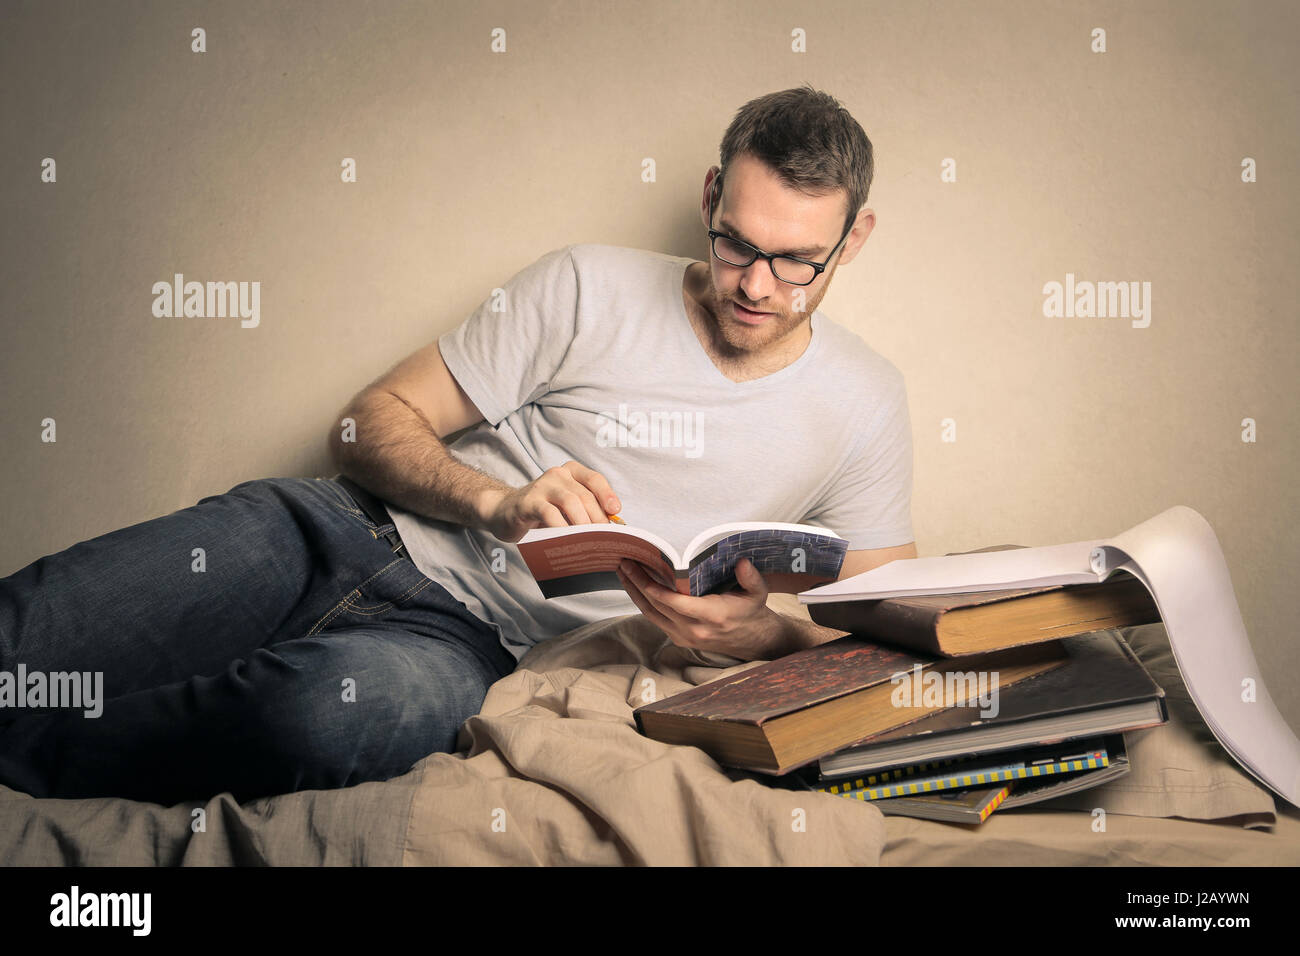 Young man studying on bed - Stock Image